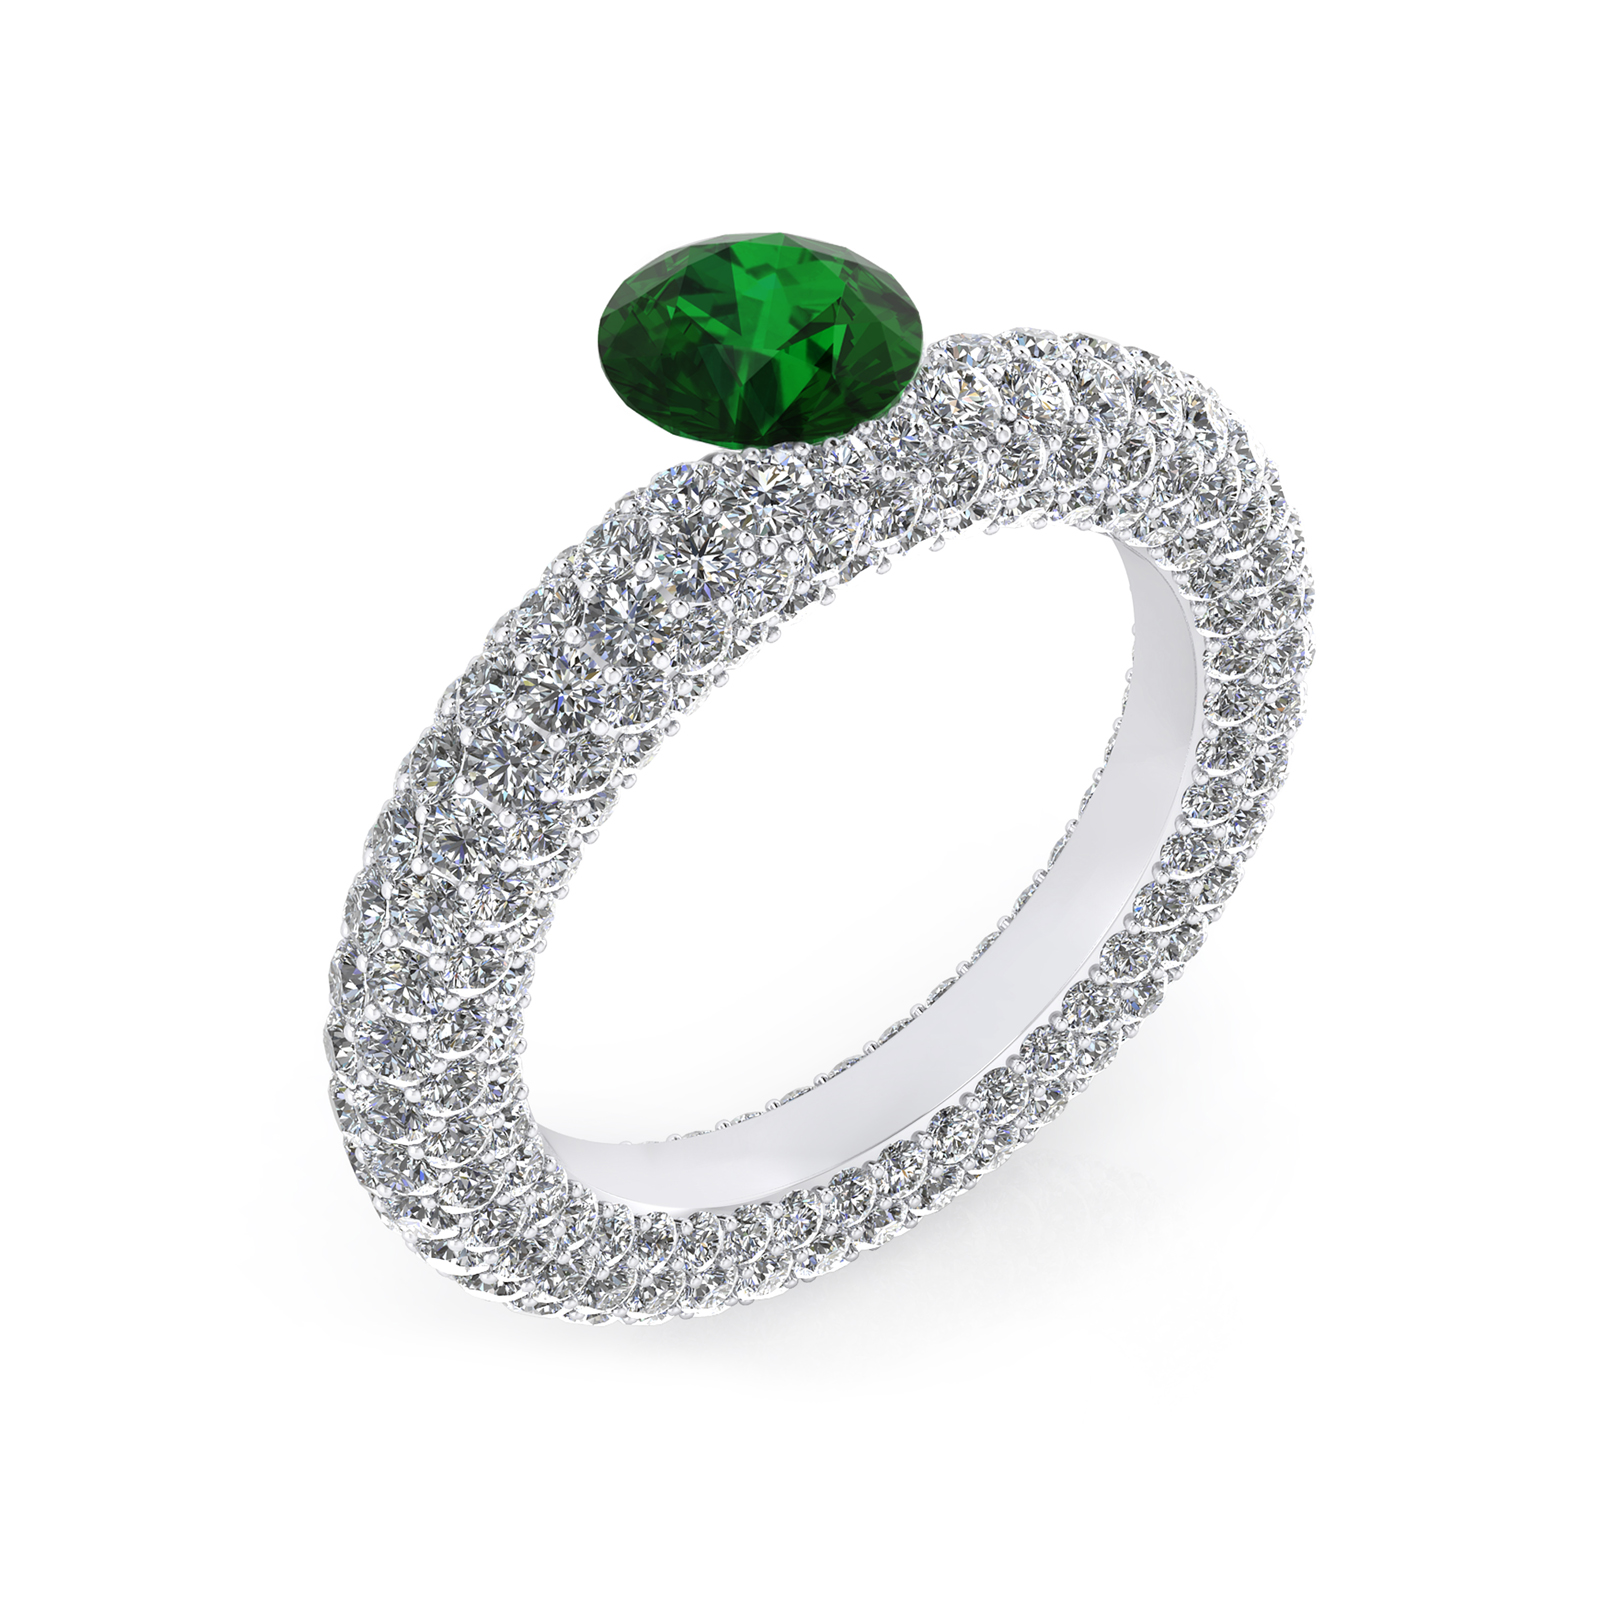 White gold engagement rings with 143 diamonds and a natural Emerald